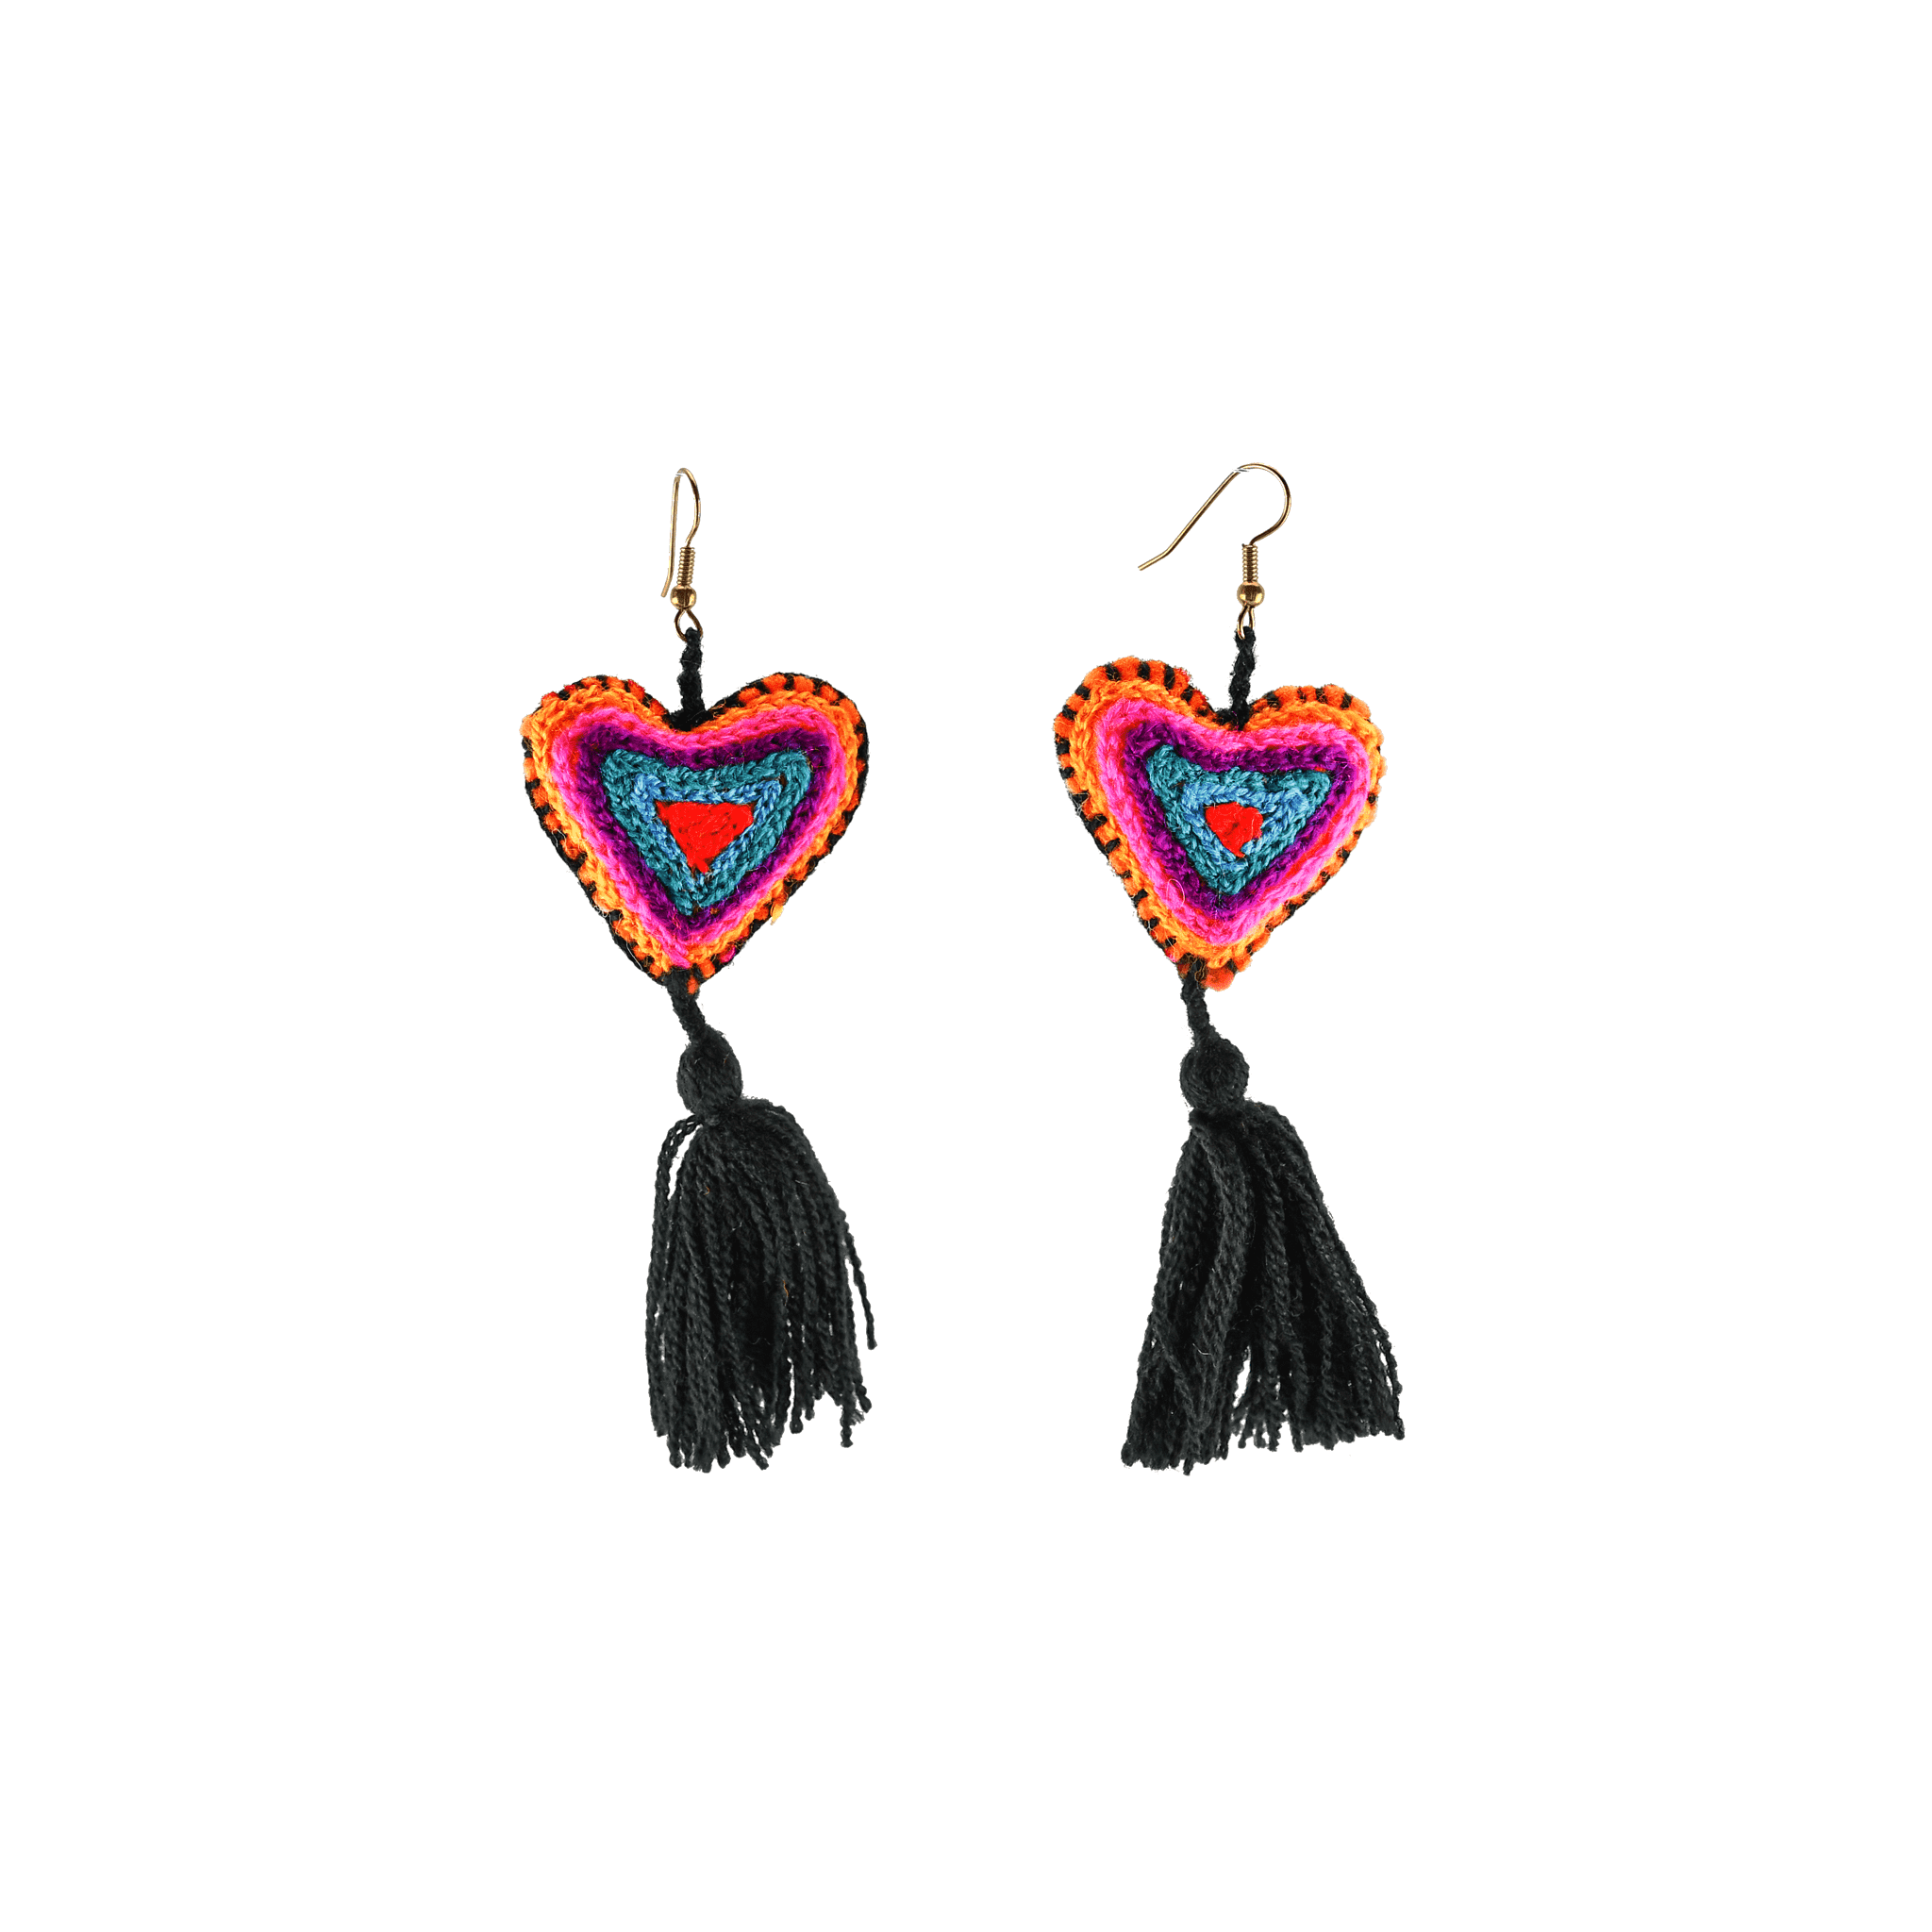 Click to shop all - The Love-ly Earrings